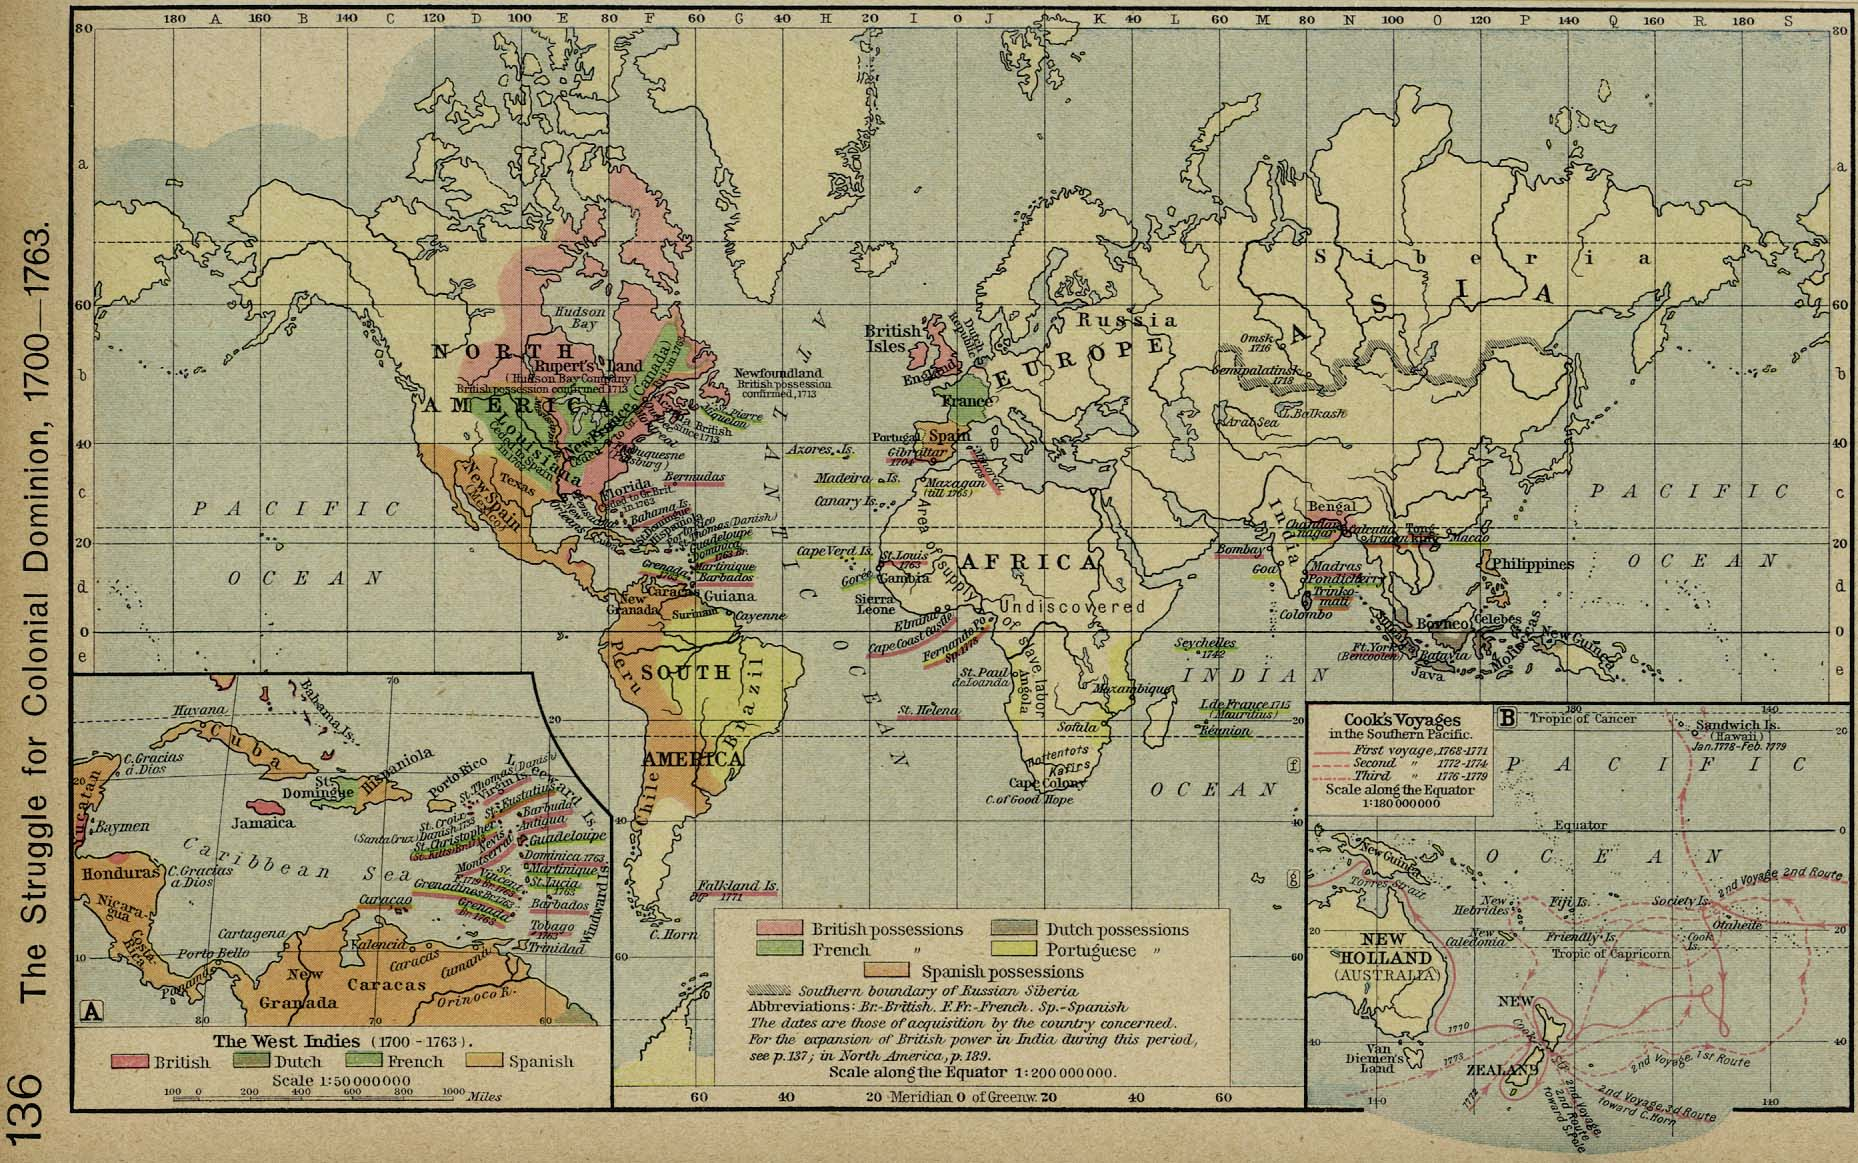 World map 1911 colonies dependencies and trade routes map of the